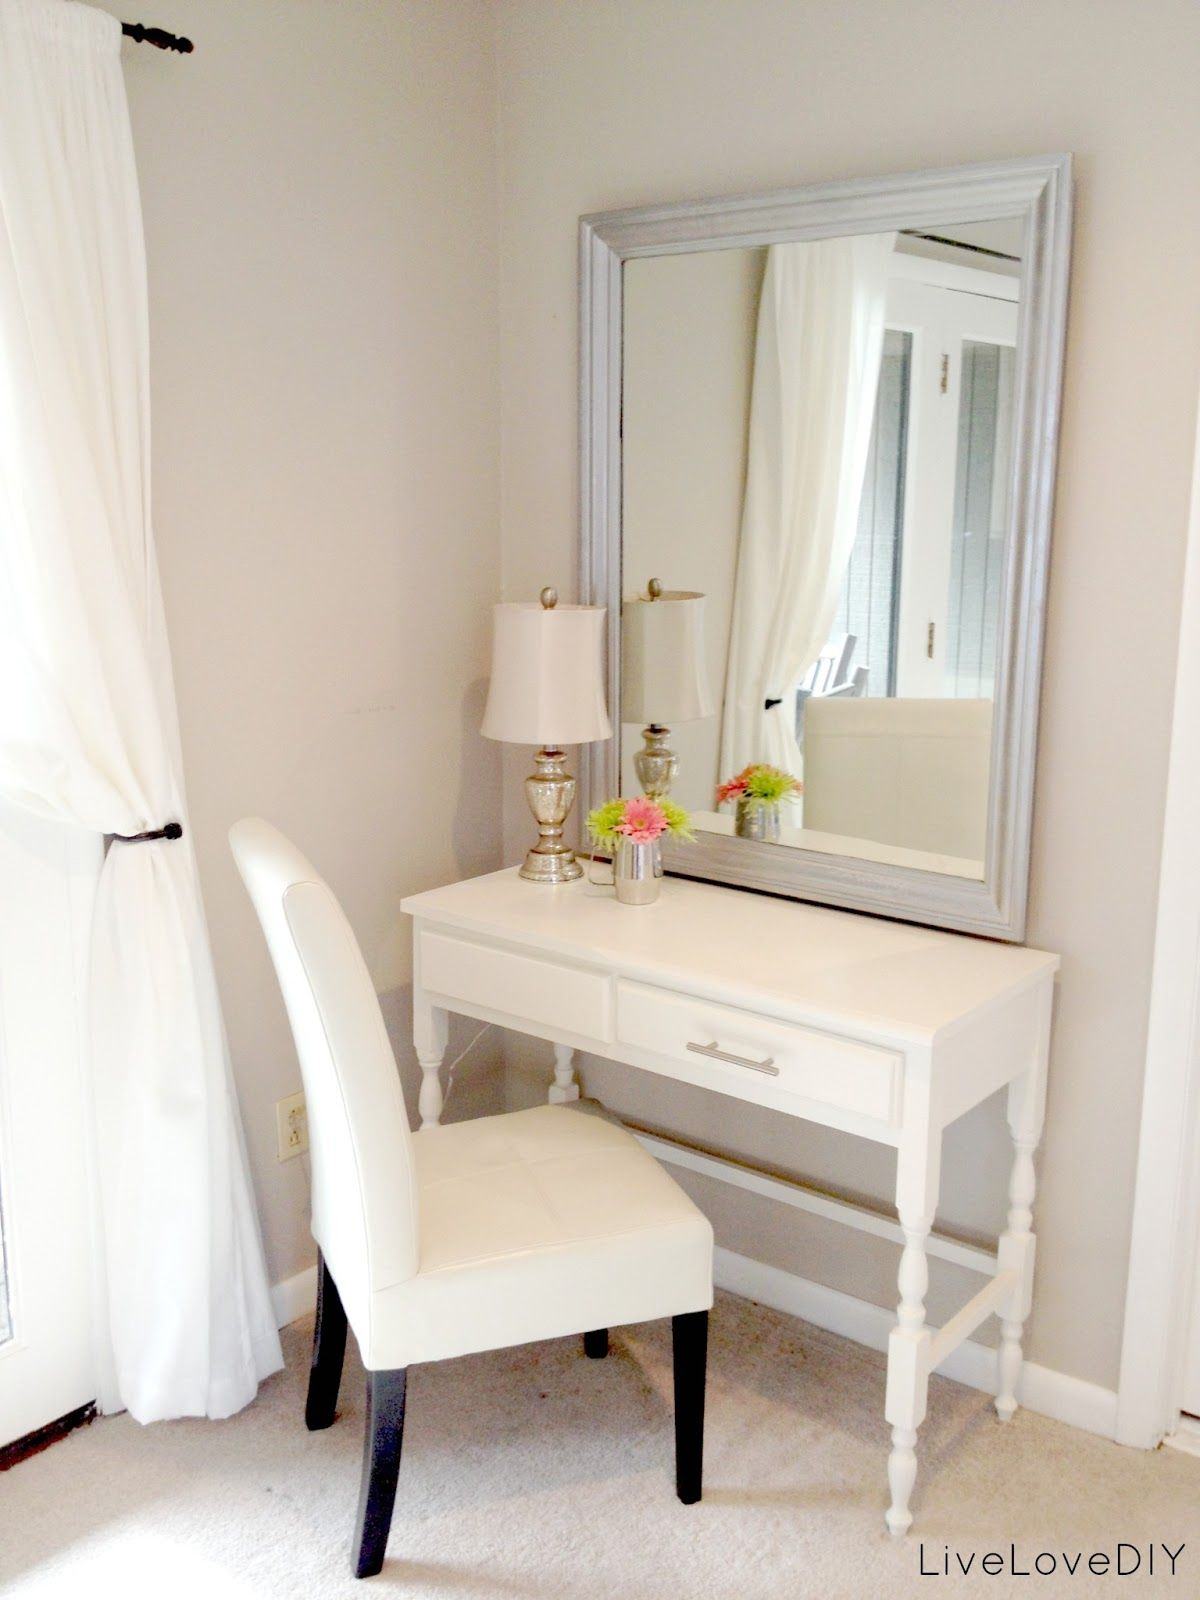 thrift store desk turned bedroom vanity table Seen here LiveLoveDIY My T